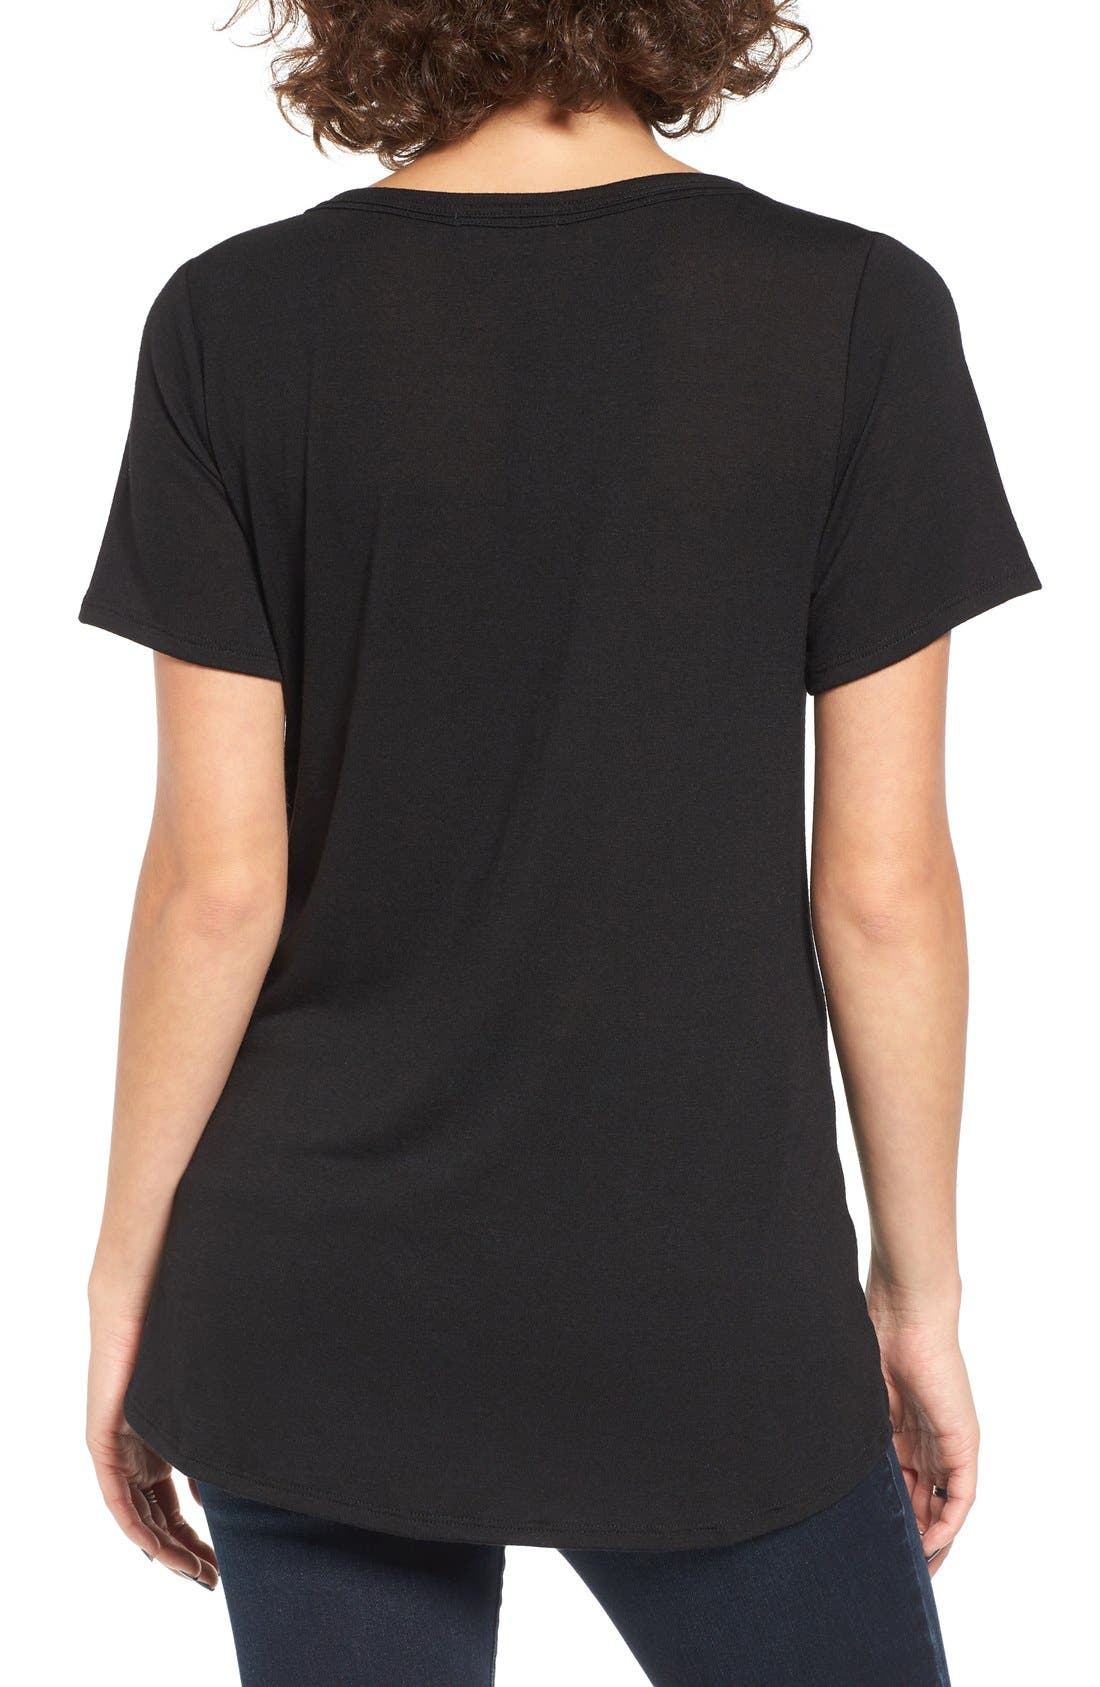 Strap Front Tee,                             Alternate thumbnail 2, color,                             001